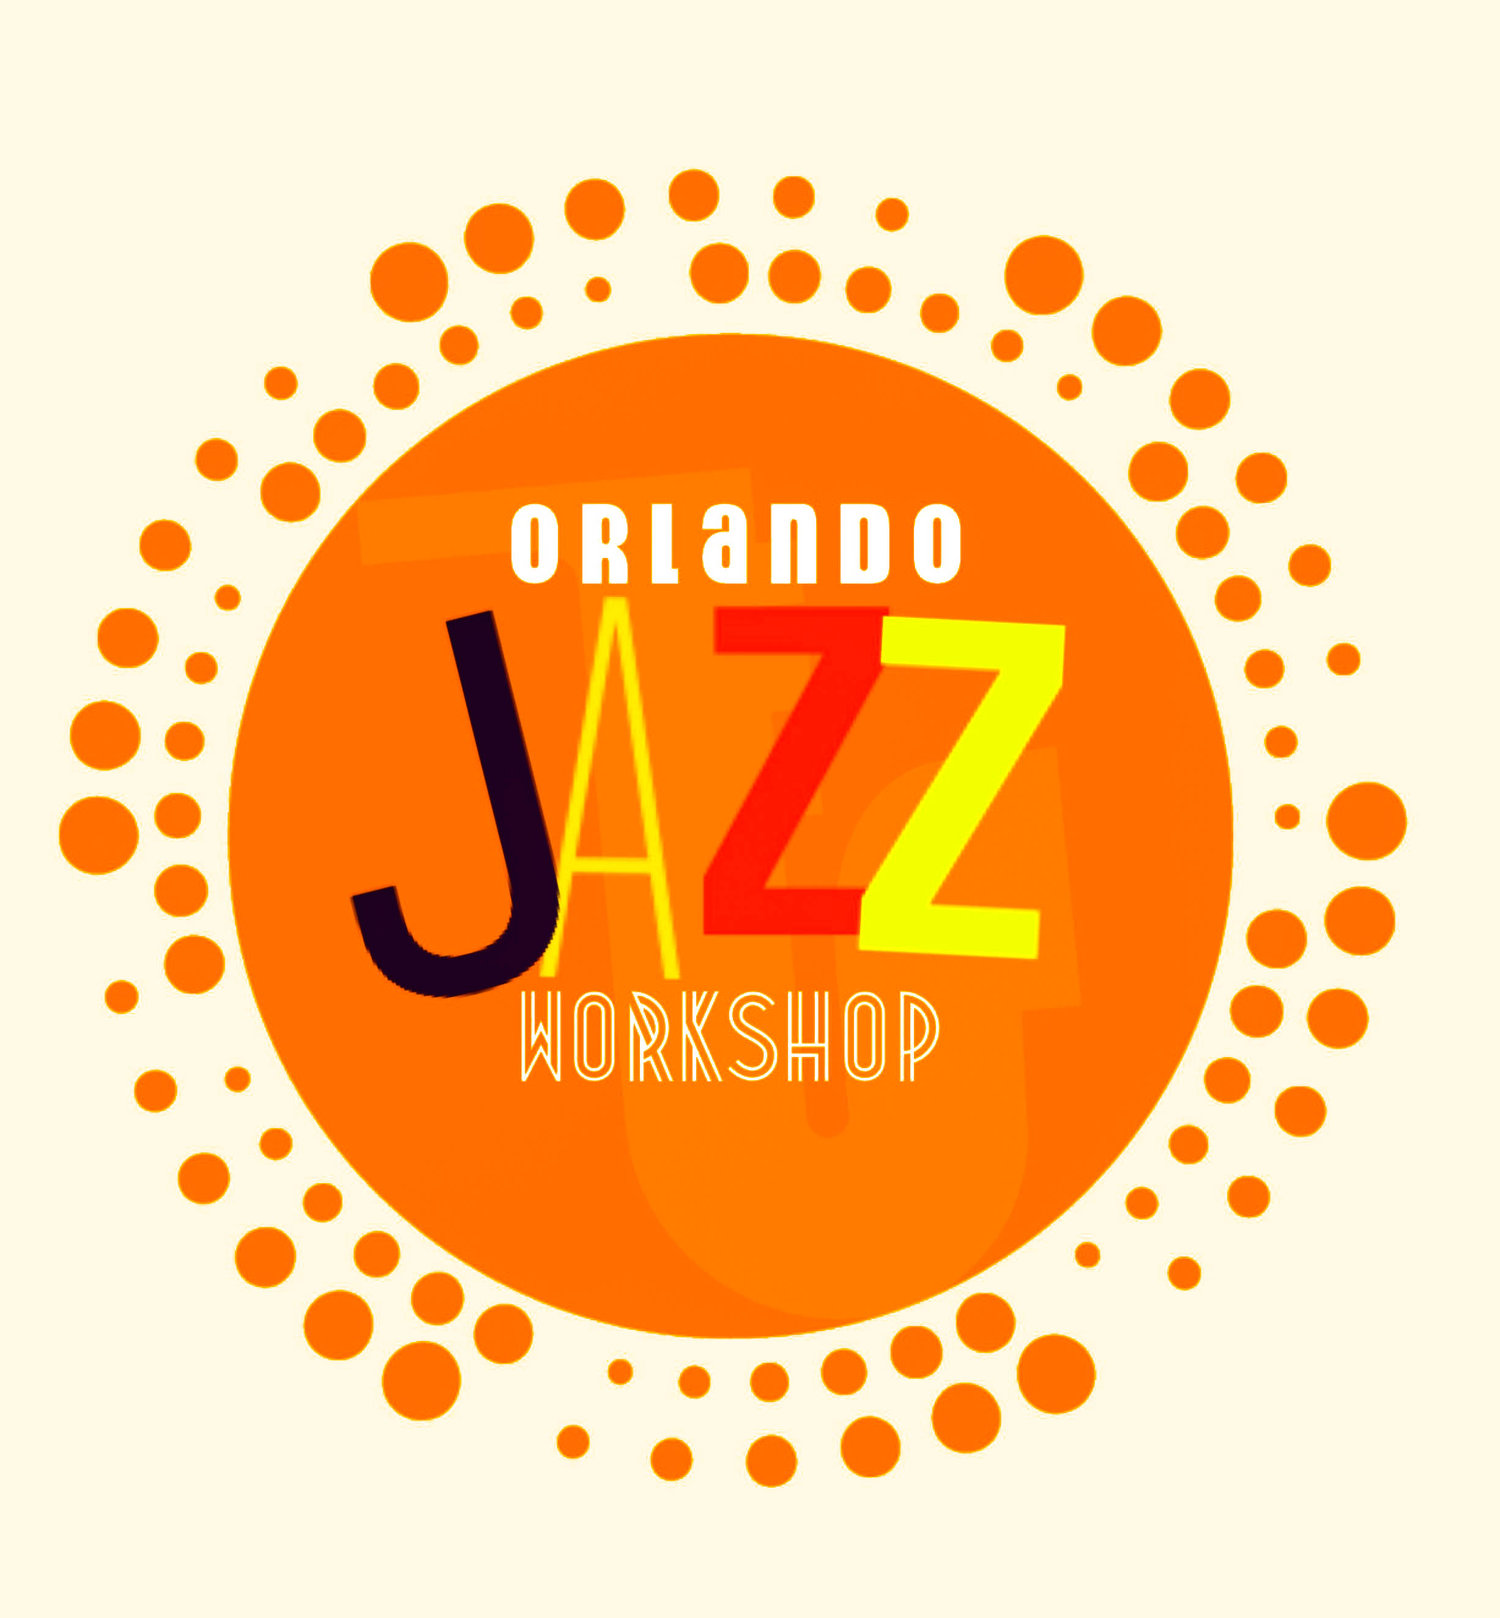 Orlando Jazz Workshop